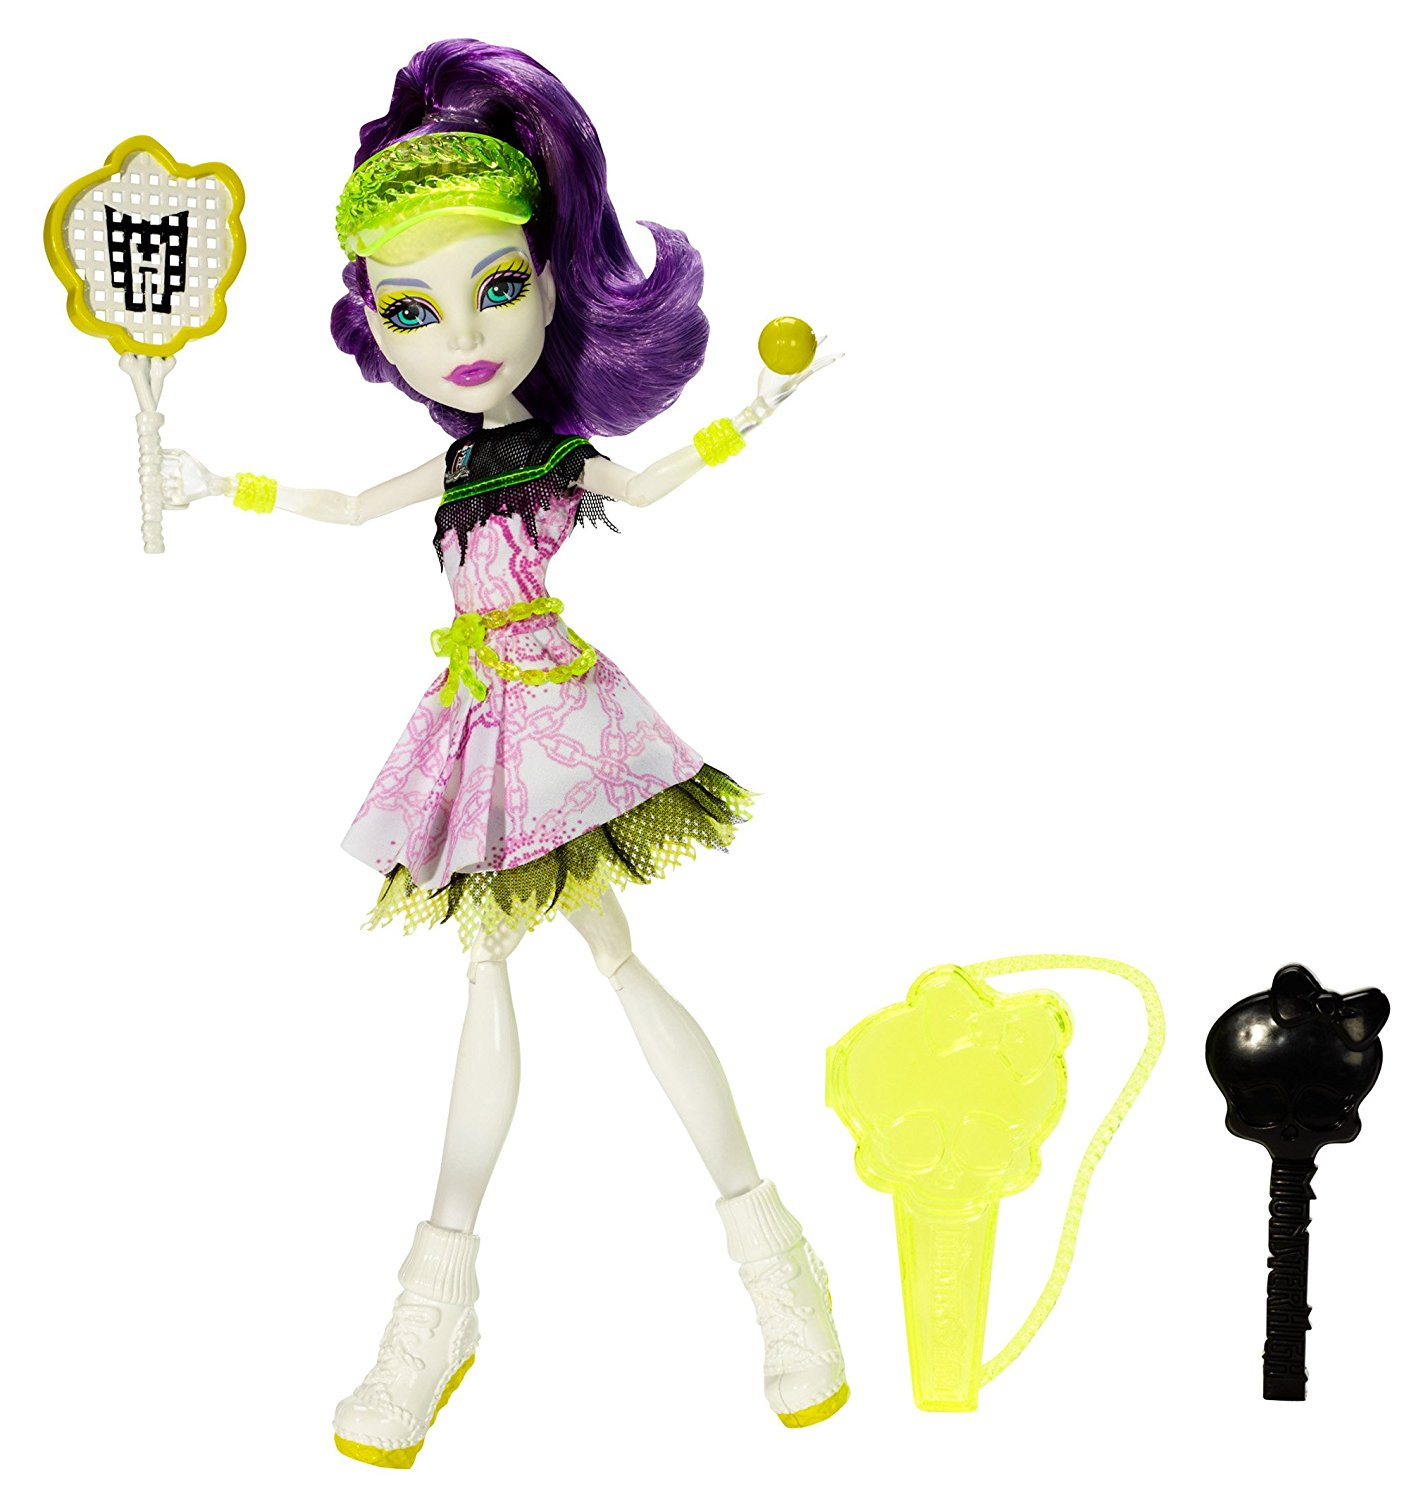 Ghoul Sports Spectra Vondergeist Doll, The ghouls love extrascaricular sport activities and are ready to bury the competition! By Monster High Ship from US